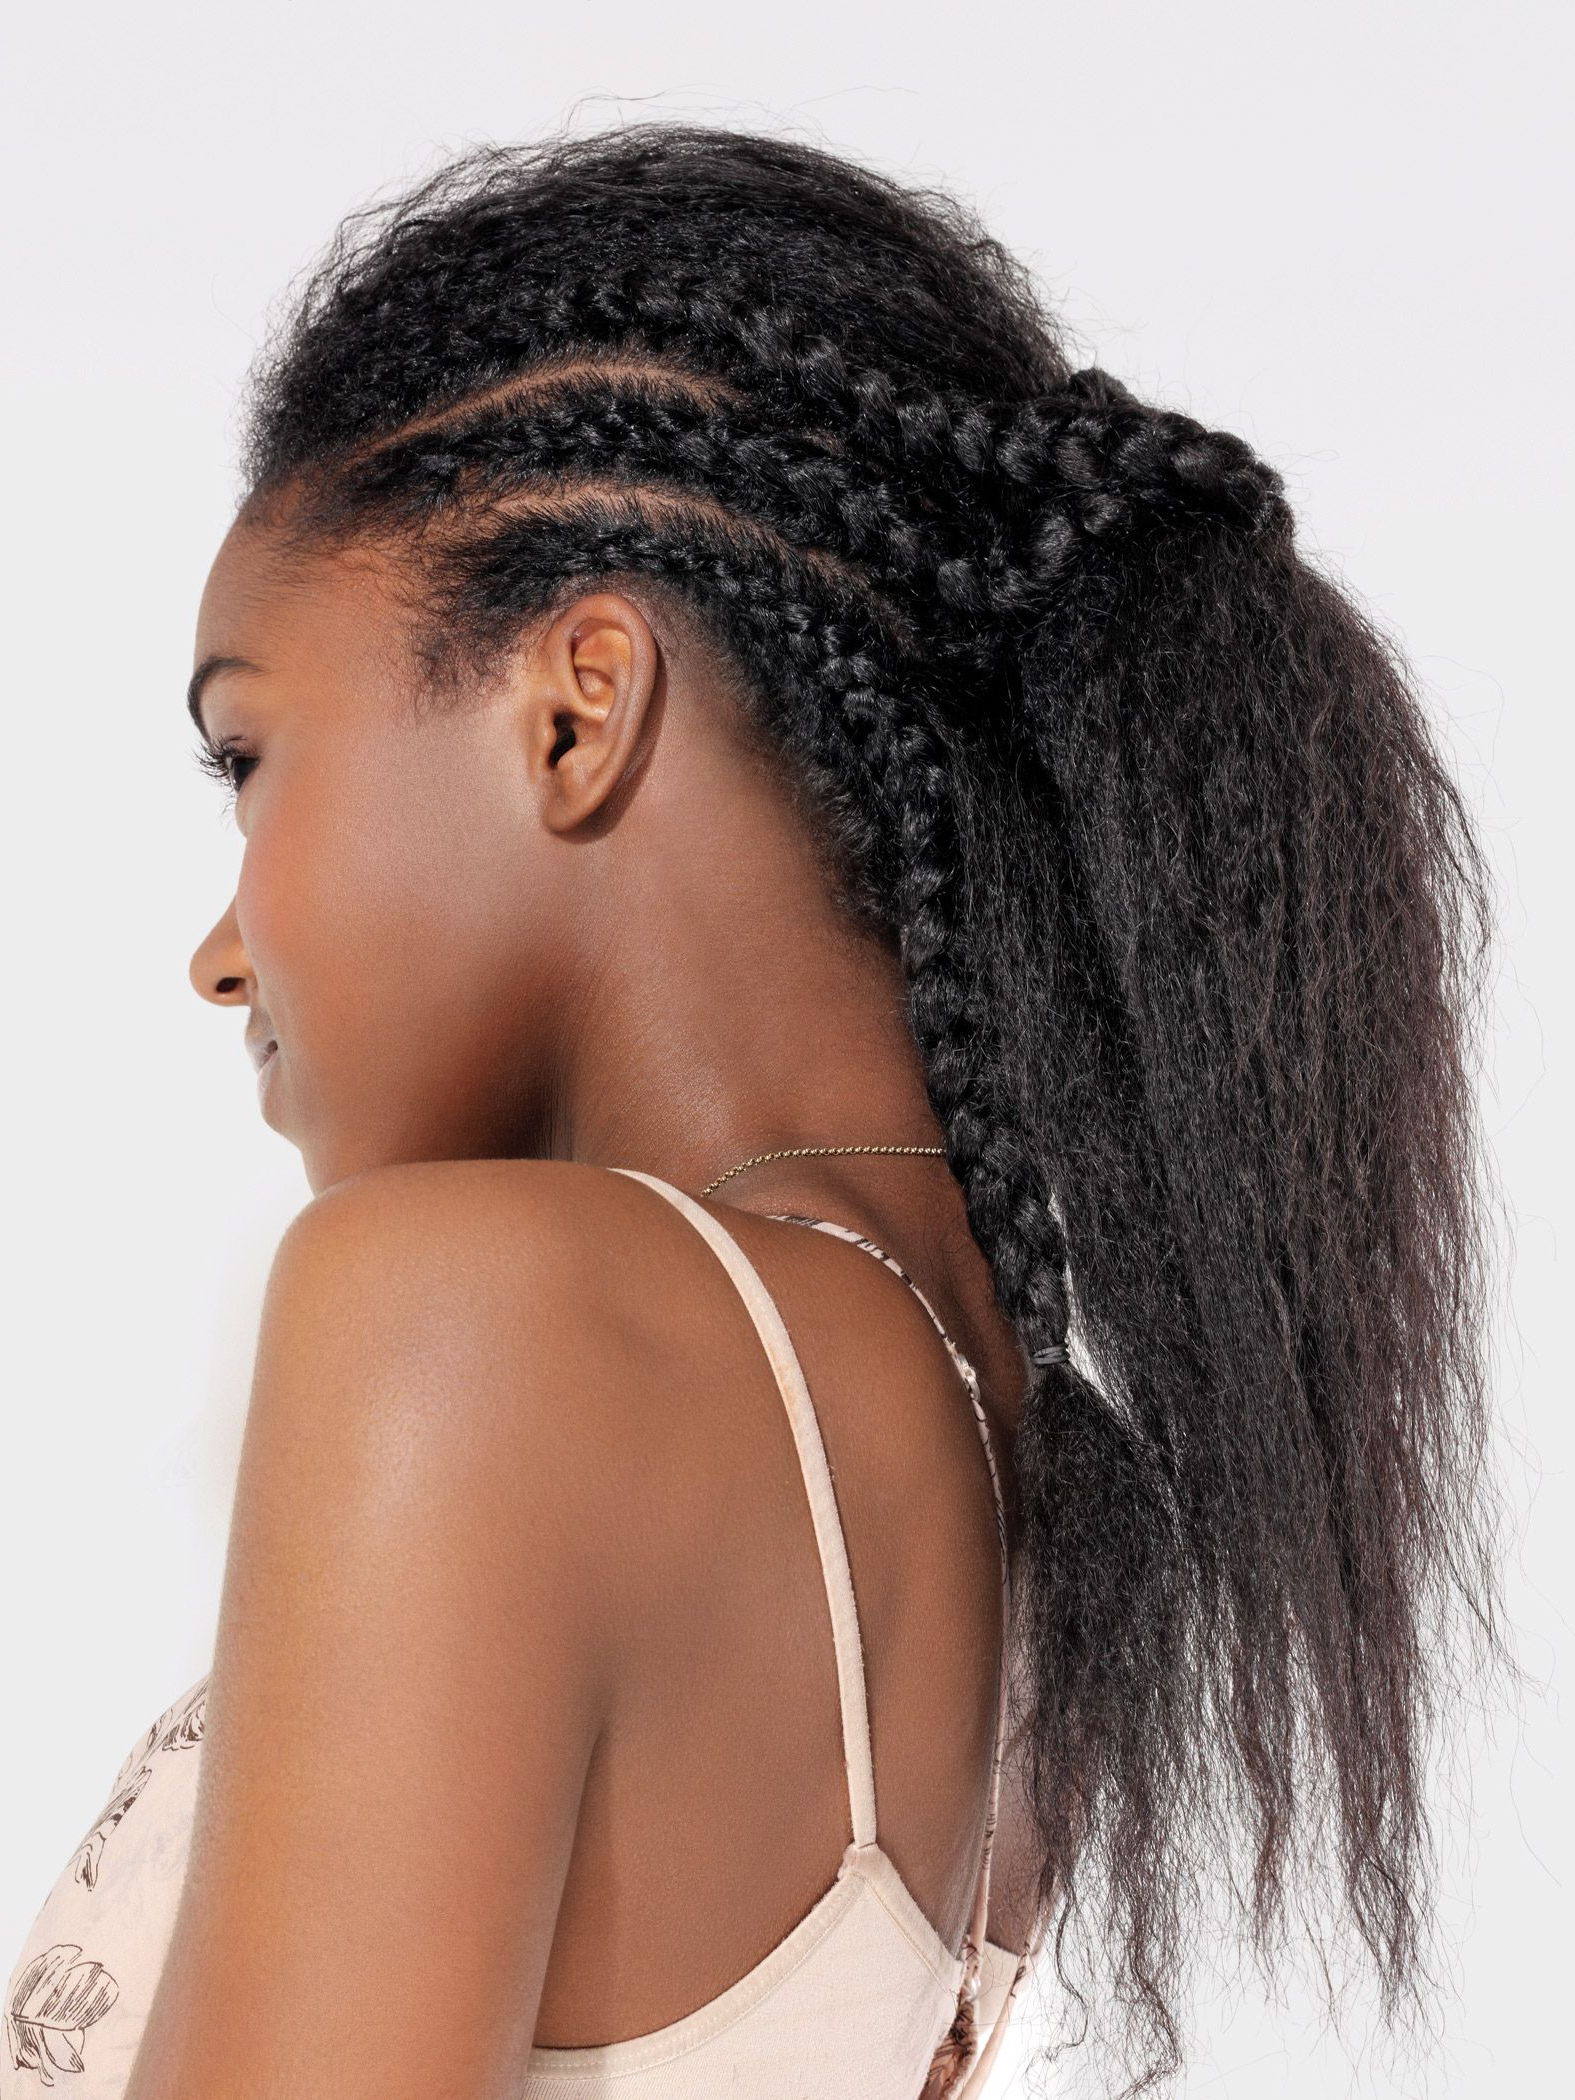 Newest Cornrow Accent Braids Hairstyles With 42 Braid Hairstyle Ideas For Teens – Best Braided Hairstyles (View 14 of 20)